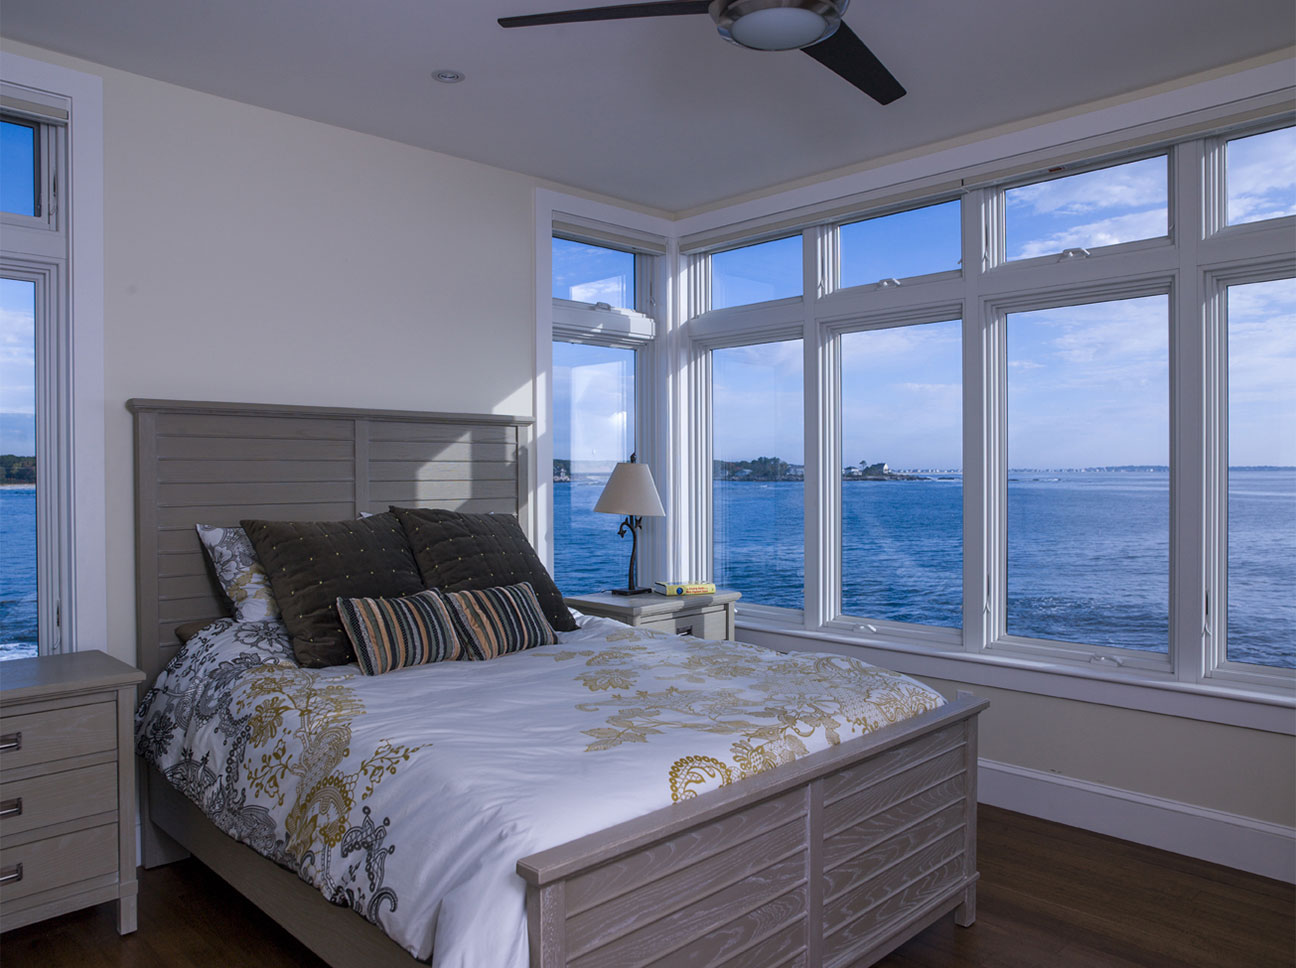 Douston-Interiors-Oceanside Bedroom